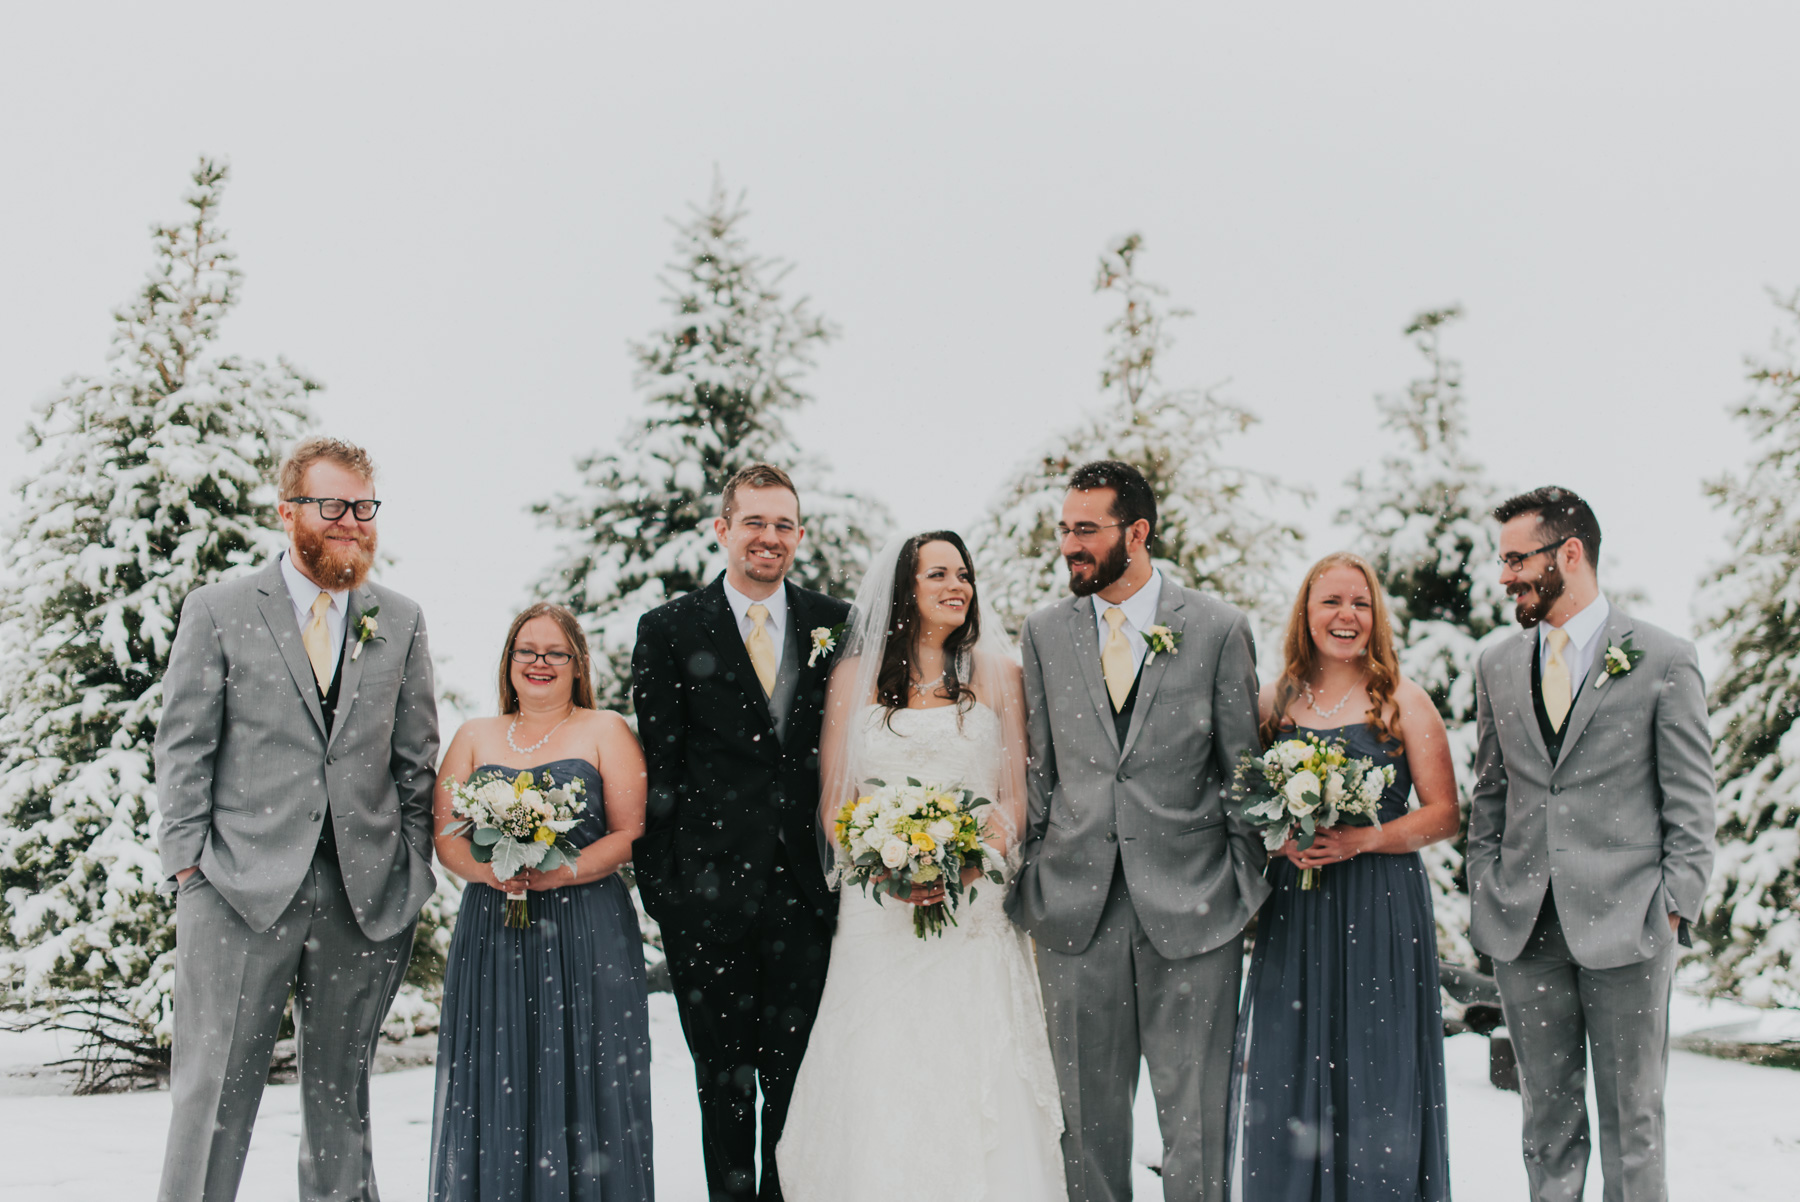 April & Jordan's bridal party braving the cold snow outside of the Windsor Estate Event Center in Windsor, Colorado. The snow was falling so think it looked like they were in the middle of nowhere in the mountains of Colorado.